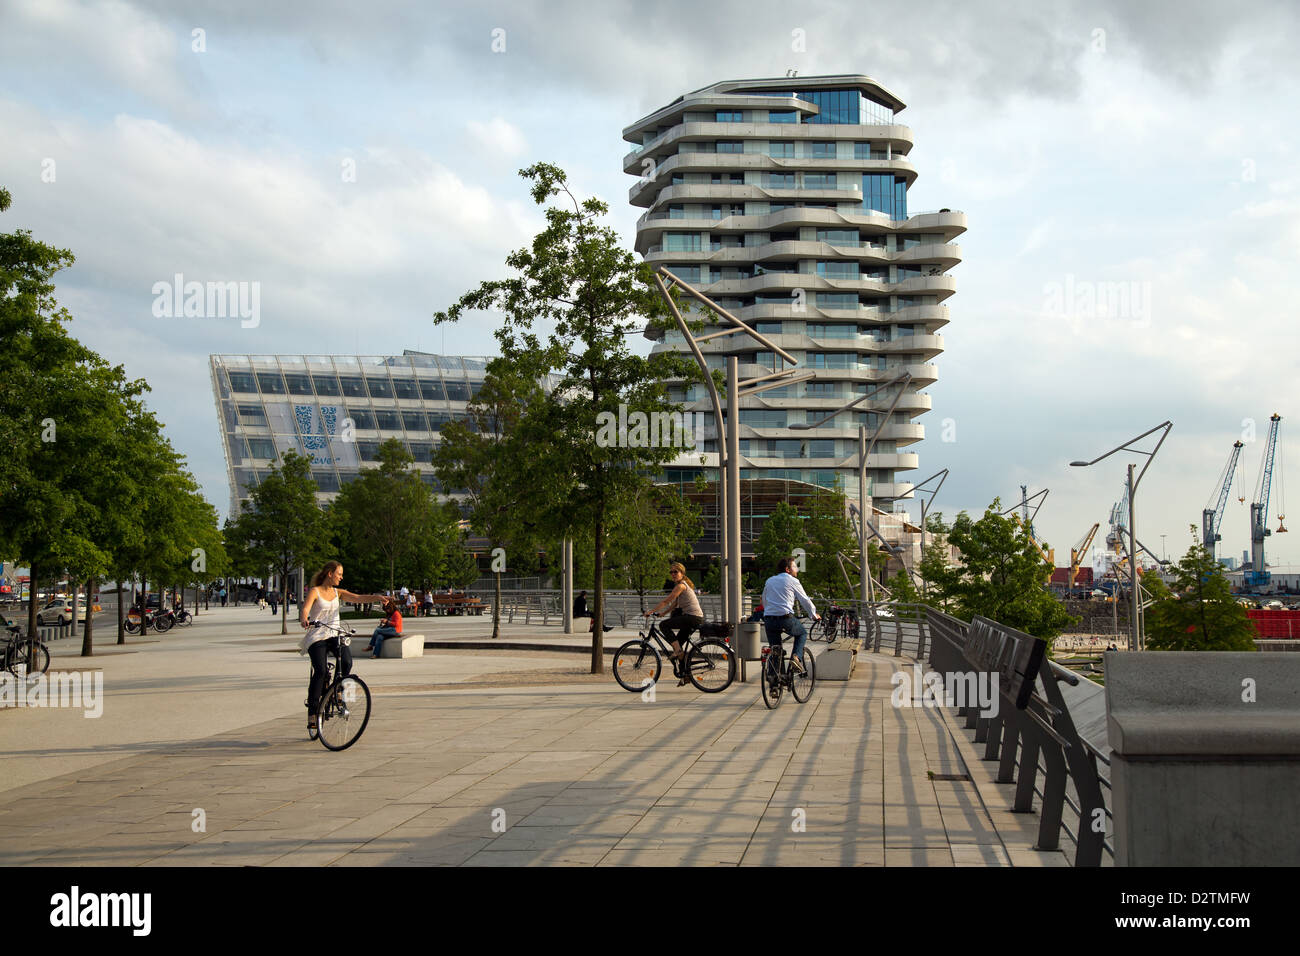 Hamburg, Germany, Marco Polo Tower and the Unilever building in HafenCity Stock Photo